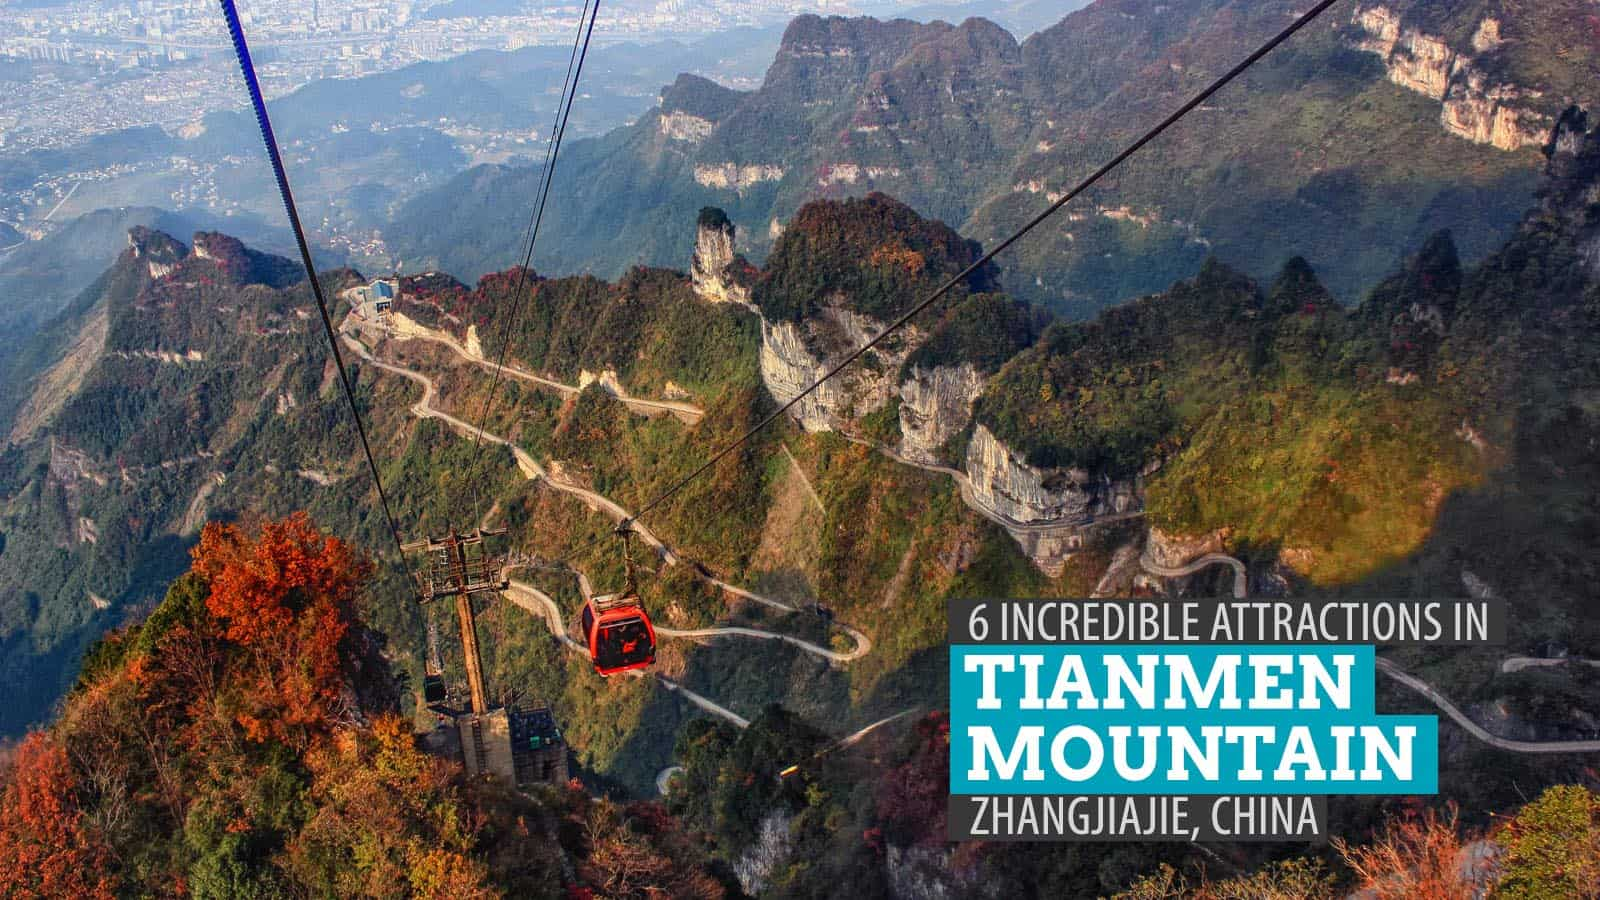 6 Incredible Attractions In Tianmen Mountain Zhangjiajie